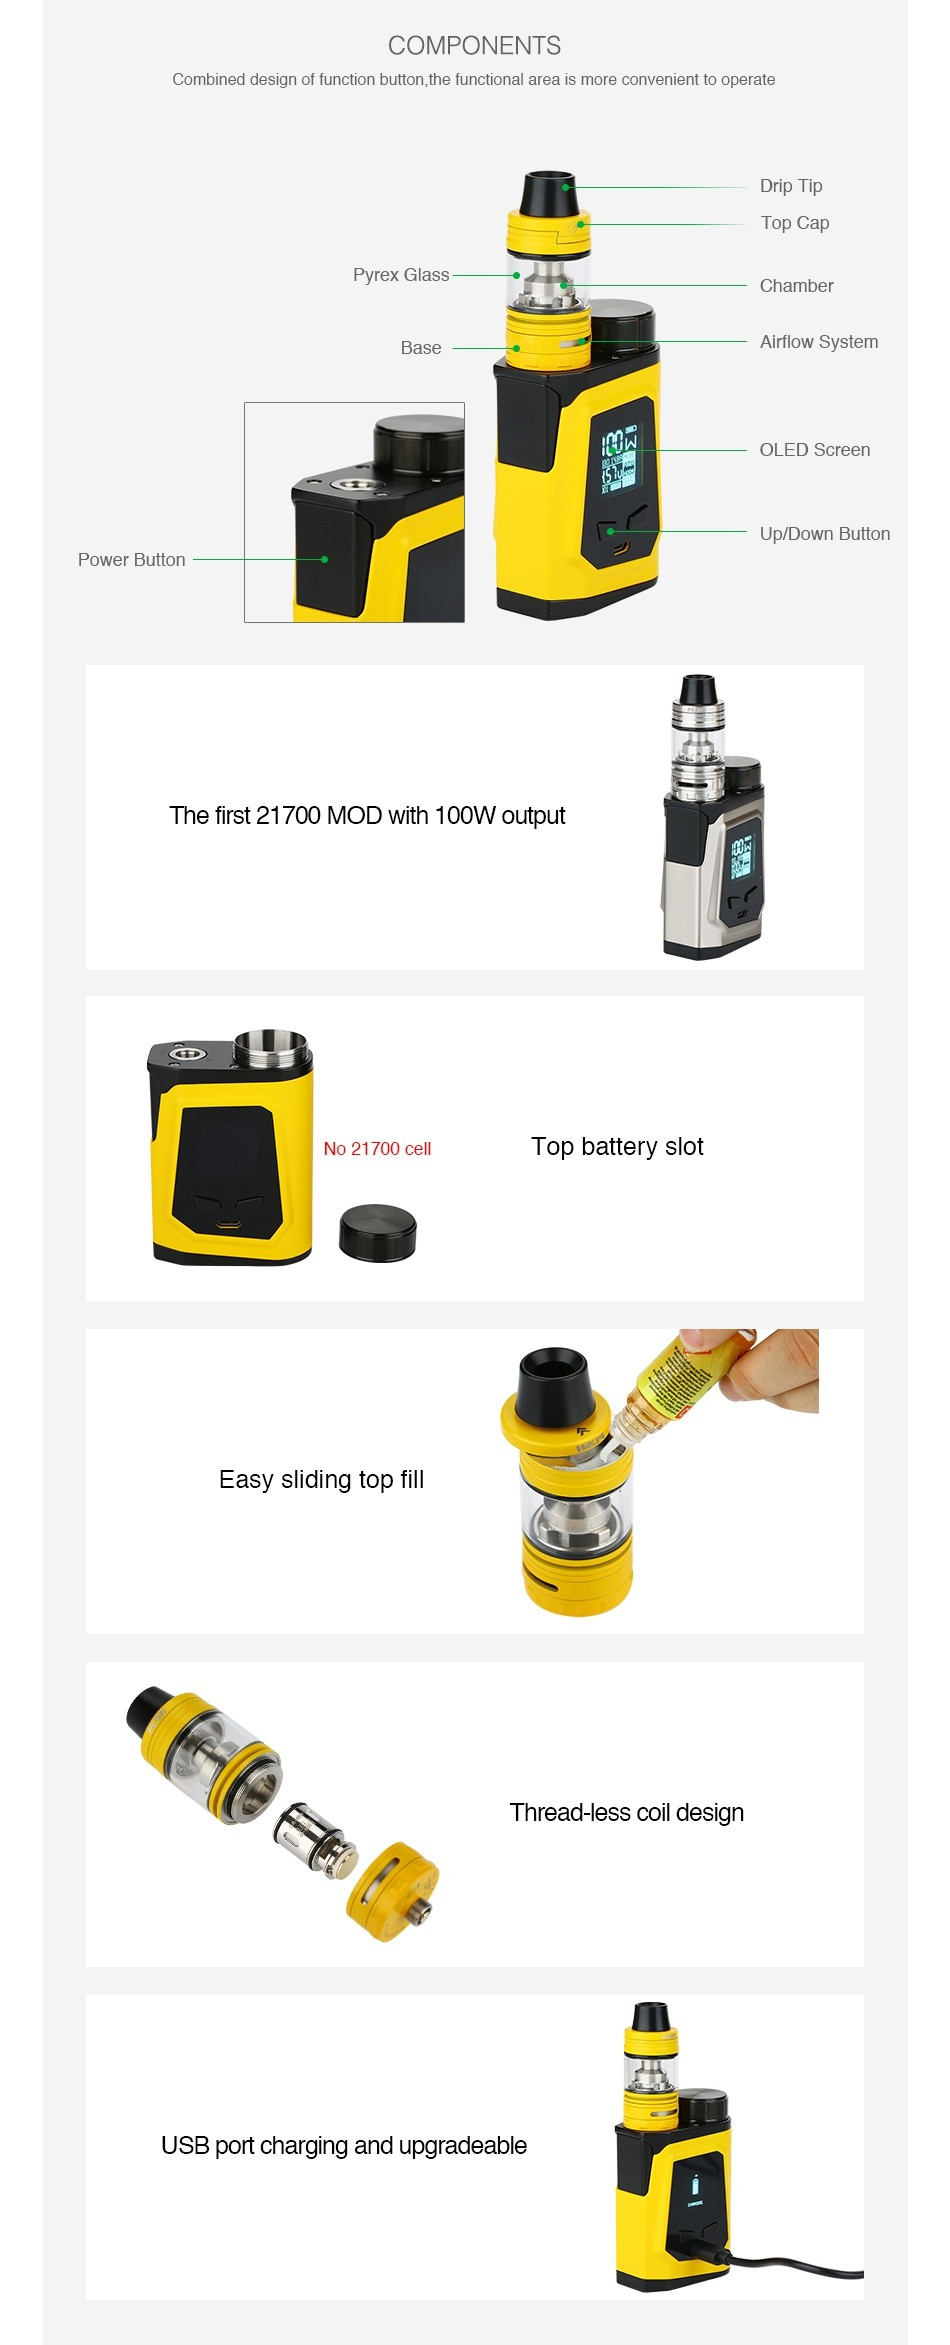 IJOY CAPO 100 with Captain Mini 21700 TC Kit COMPONENTS Combined design of function button the functional area is more convenient to operate p Pyrex Glass Chamber Airflow System OLED Scrccn Down butto Powcr Button The first 21700 Mod with 100W output No 21700 cell Top battery slot Easy sliding top fil Thread less coil design USB port charging and upgradeable